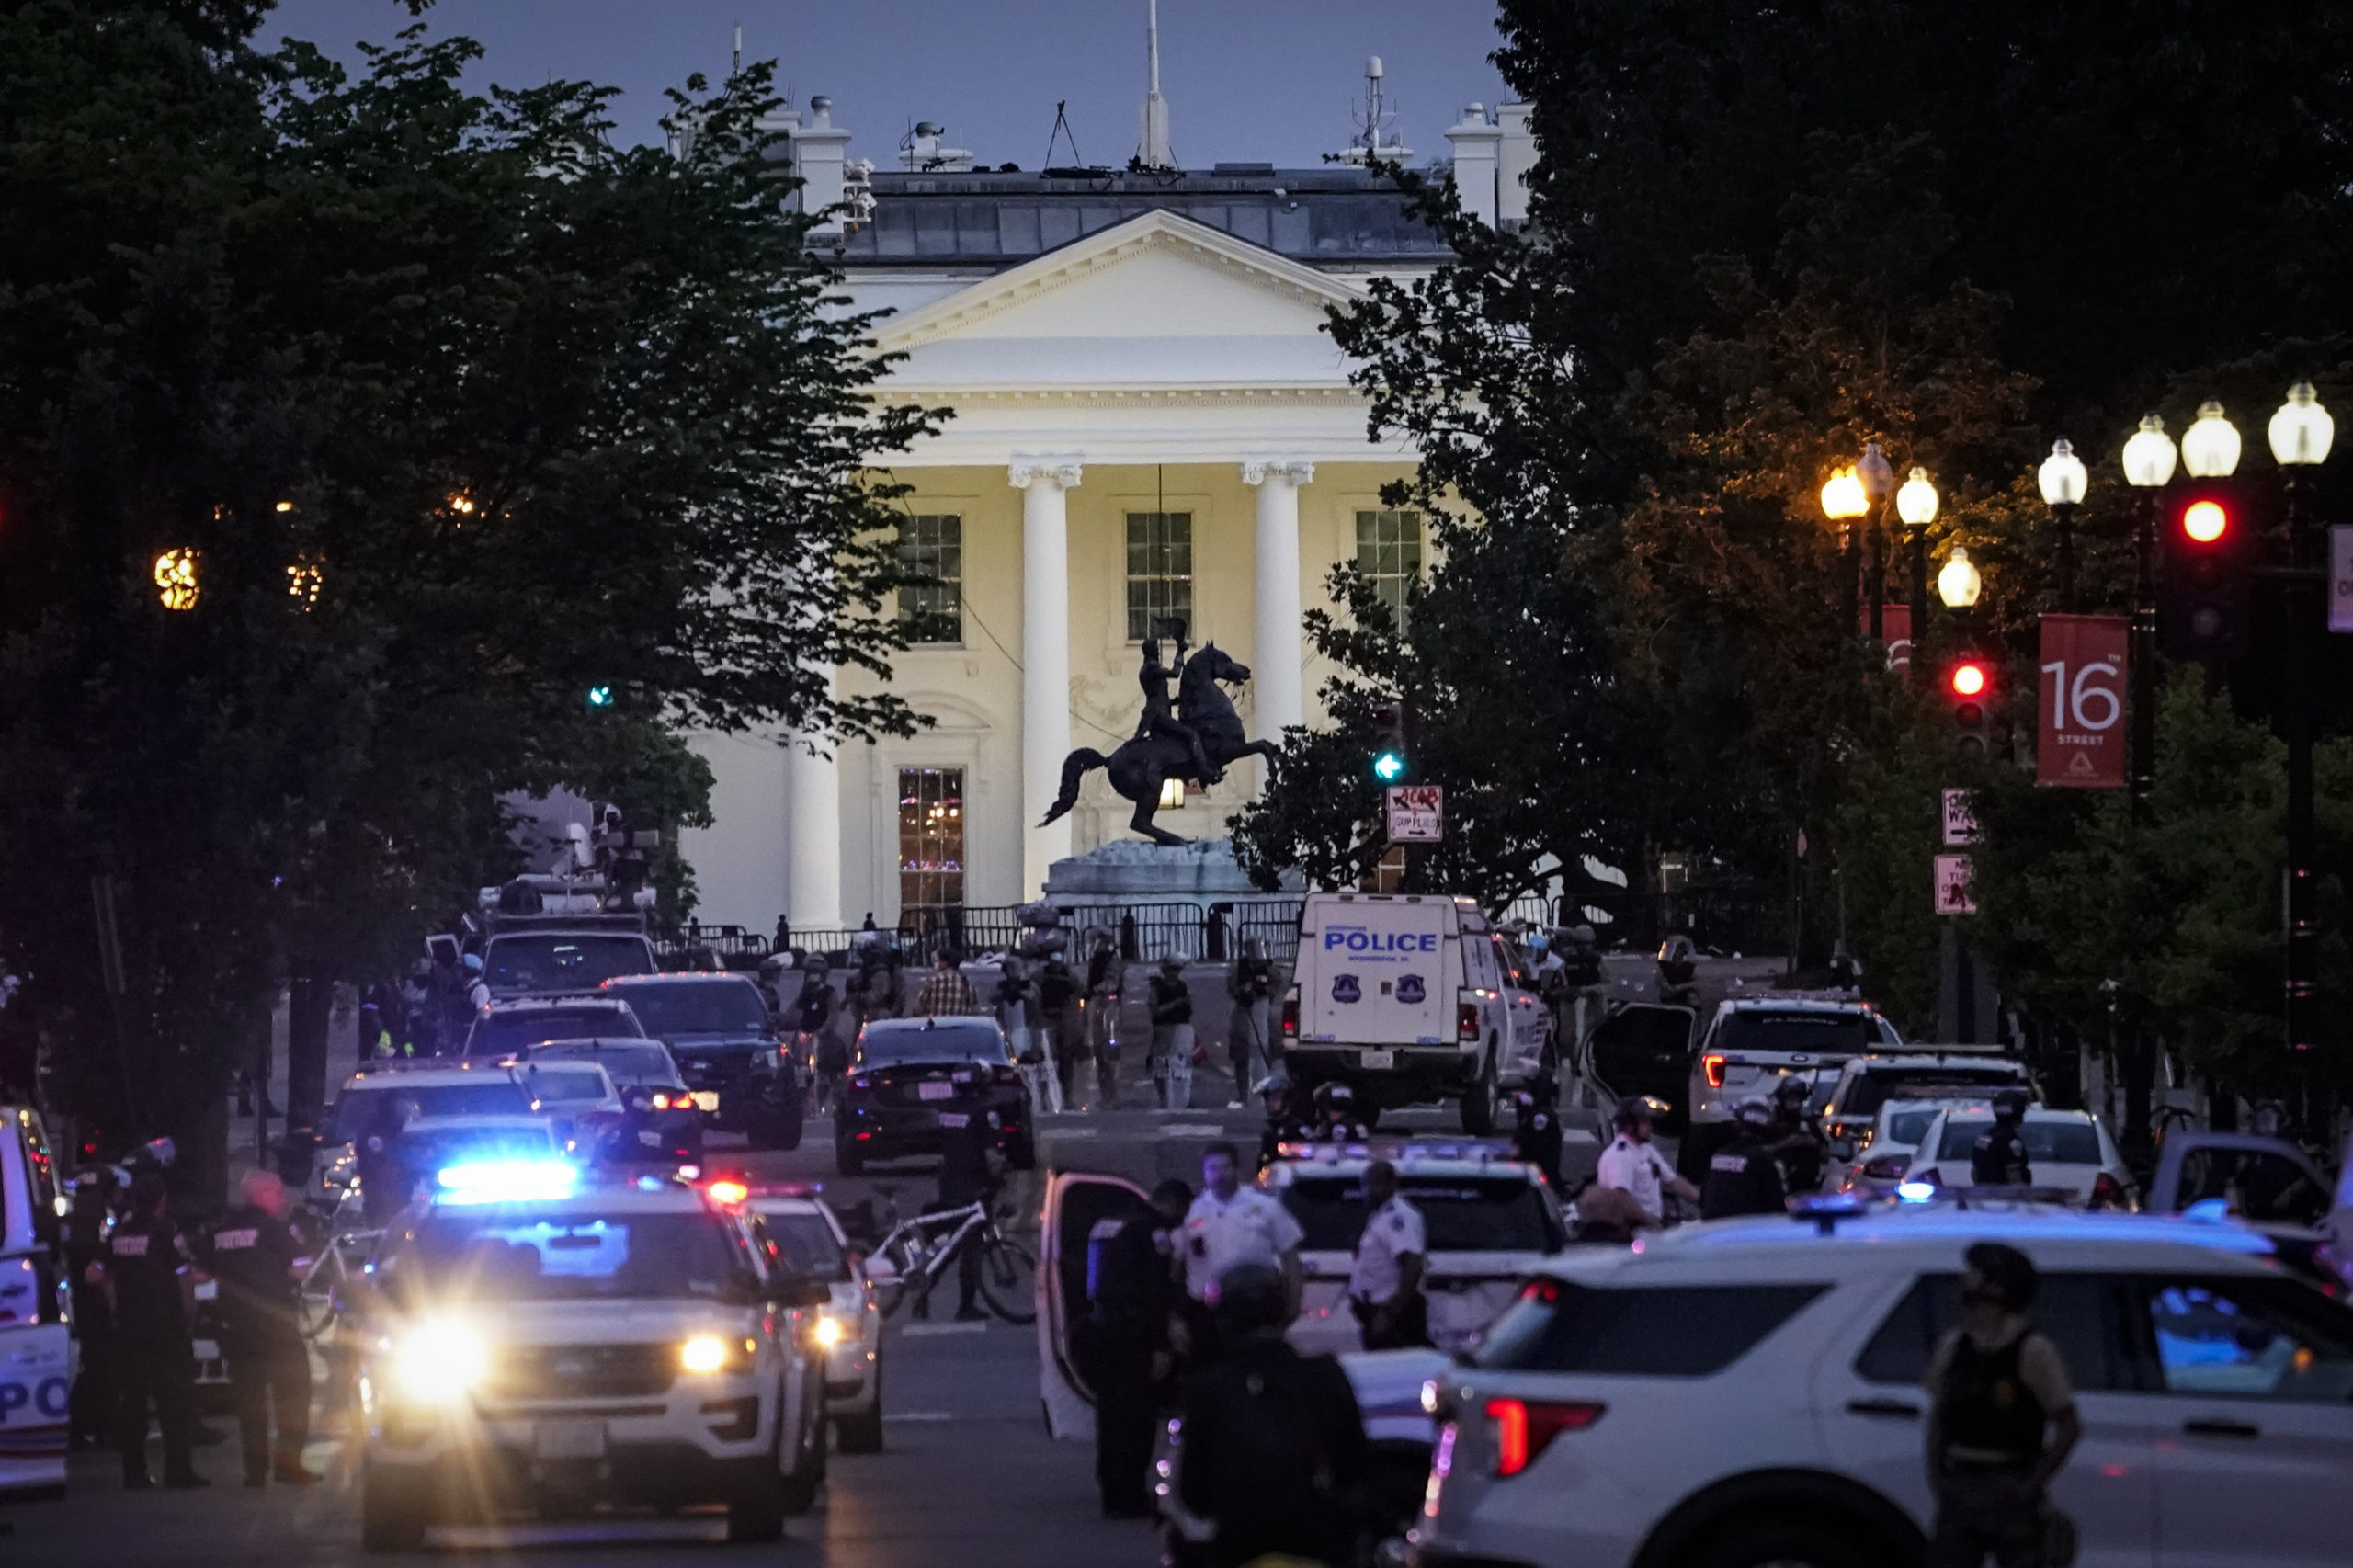 WASHINGTON, DC - JUNE 01: A large law enforcement response is seen near the White House after a protest was dispersed on June 1, 2020 in downtown Washington, DC. Protests and riots continue in cities across America following the death of George Floyd, who died after being restrained by Minneapolis police officer Derek Chauvin. Chauvin, 44, was charged last Friday with third-degree murder and second-degree manslaughter. (Photo by Drew Angerer/Getty Images)